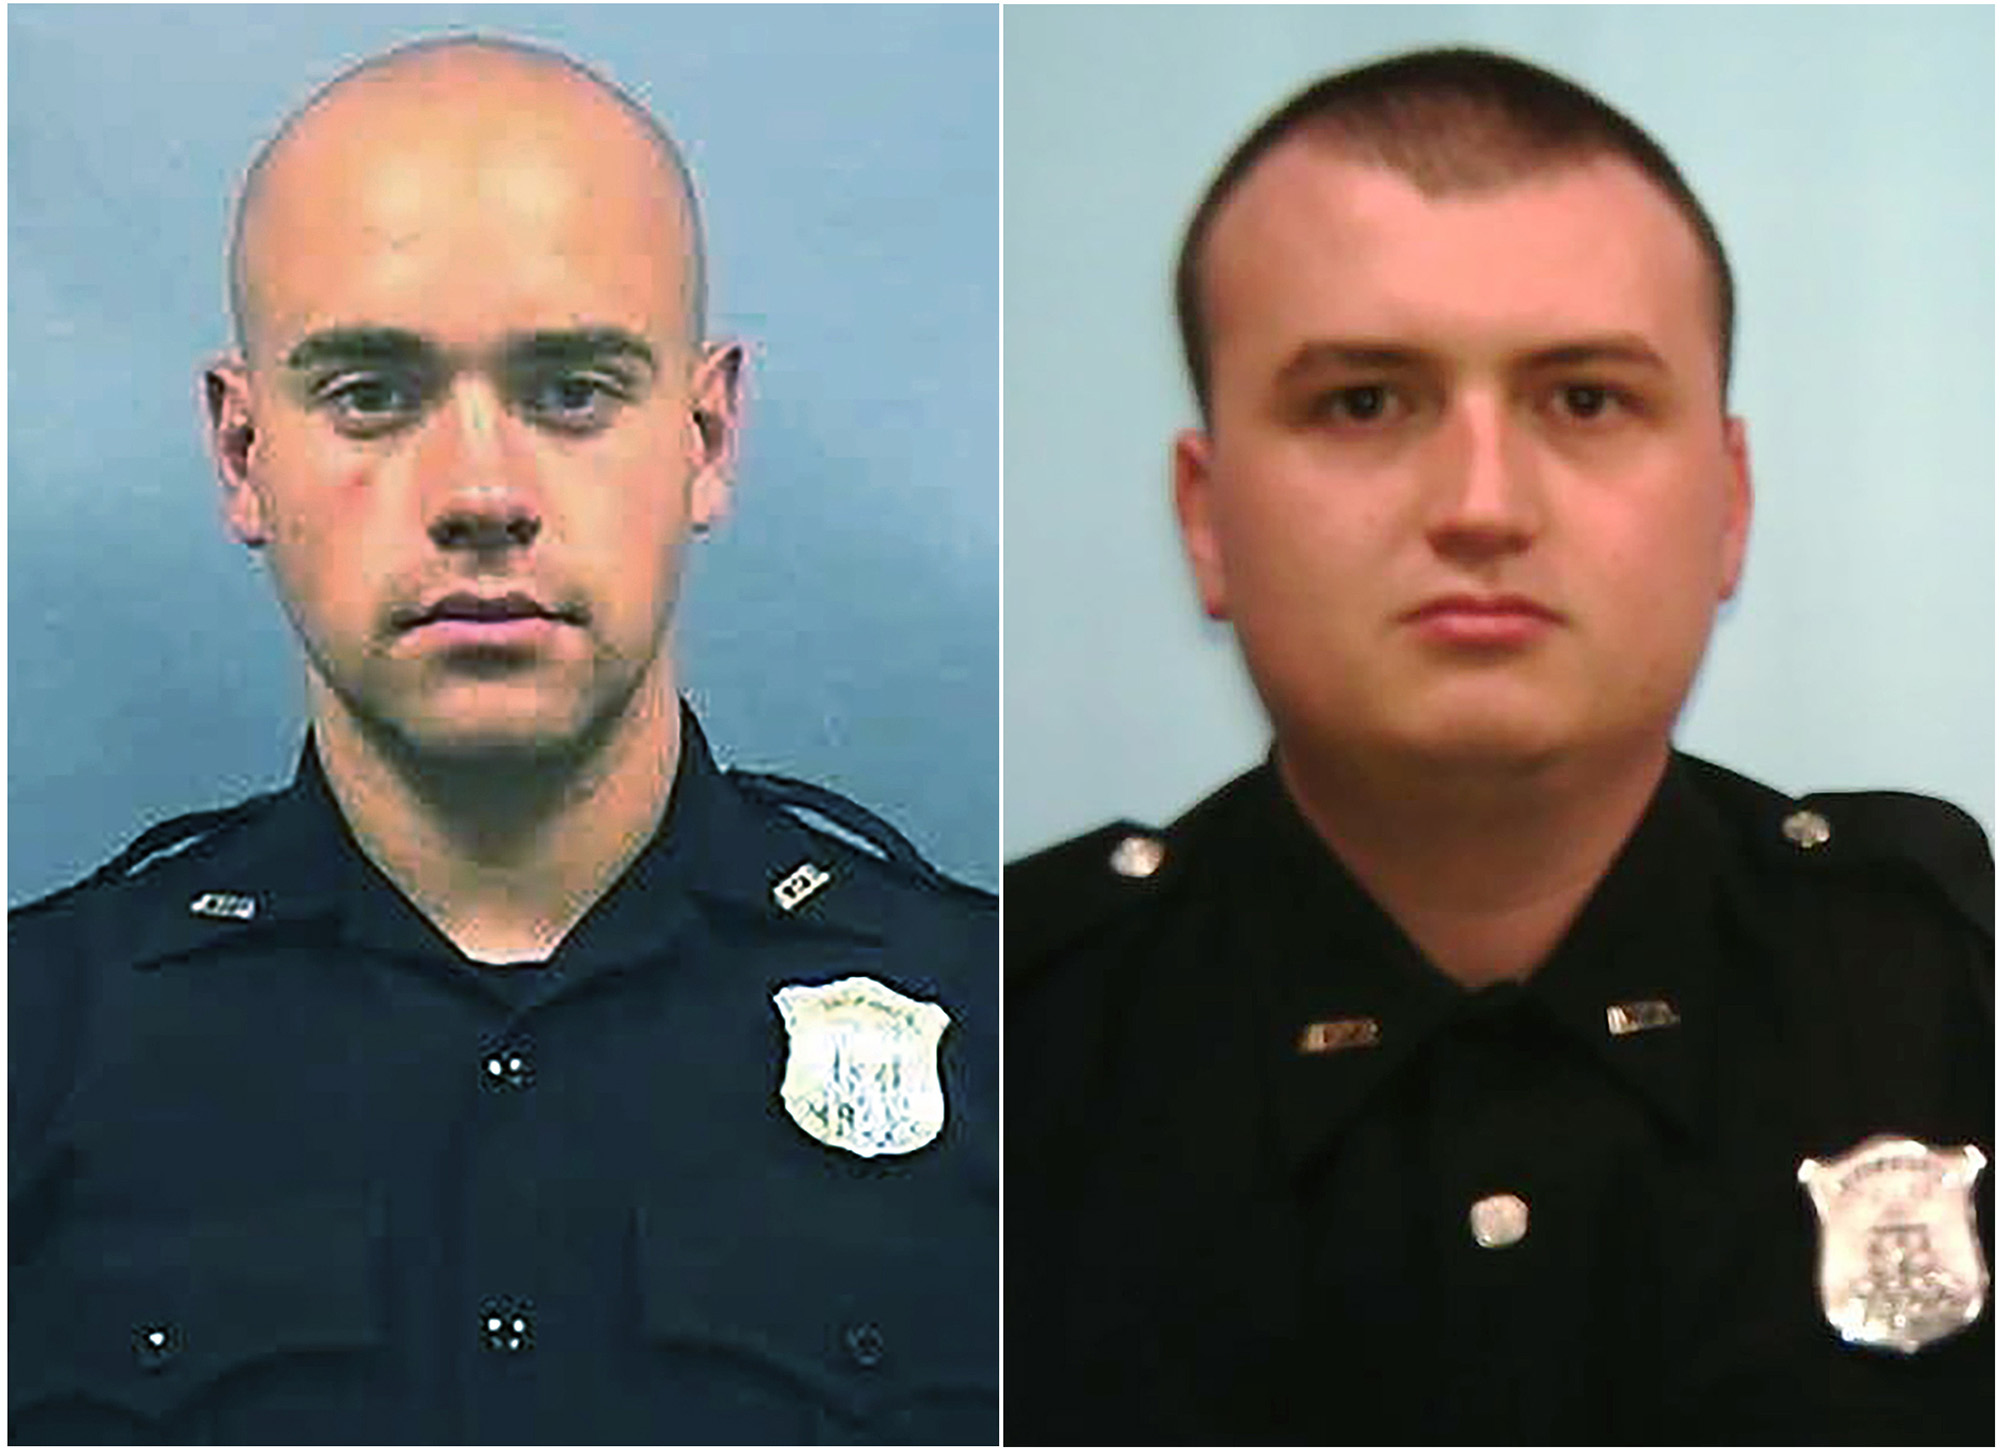 Atlanta Police Department Officer Garrett Rolfe, left and Officer Devin Brosnan. Rolfe, who fatally shot Rayshard Brooks in the back after the fleeing man pointed a stun gun in his direction, was charged with felony murder and 10 other charges.